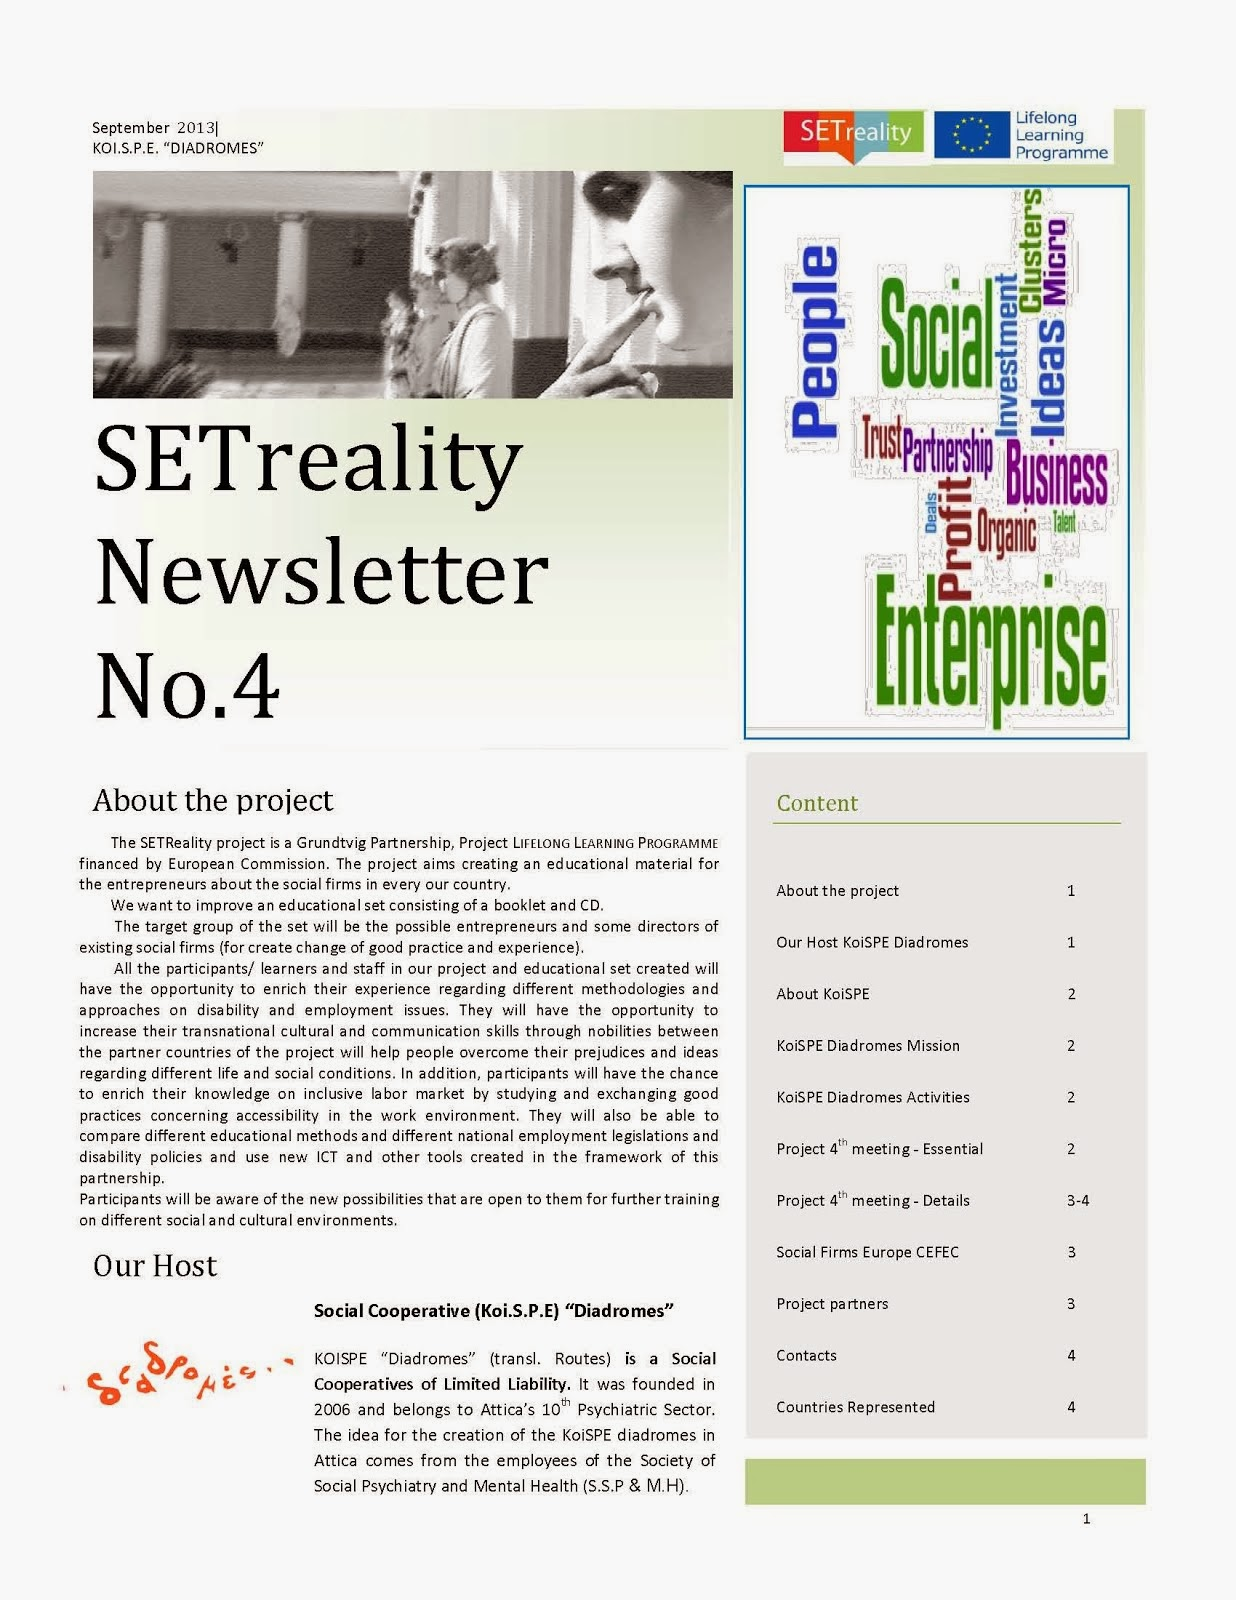 SETreality Newsletter 4